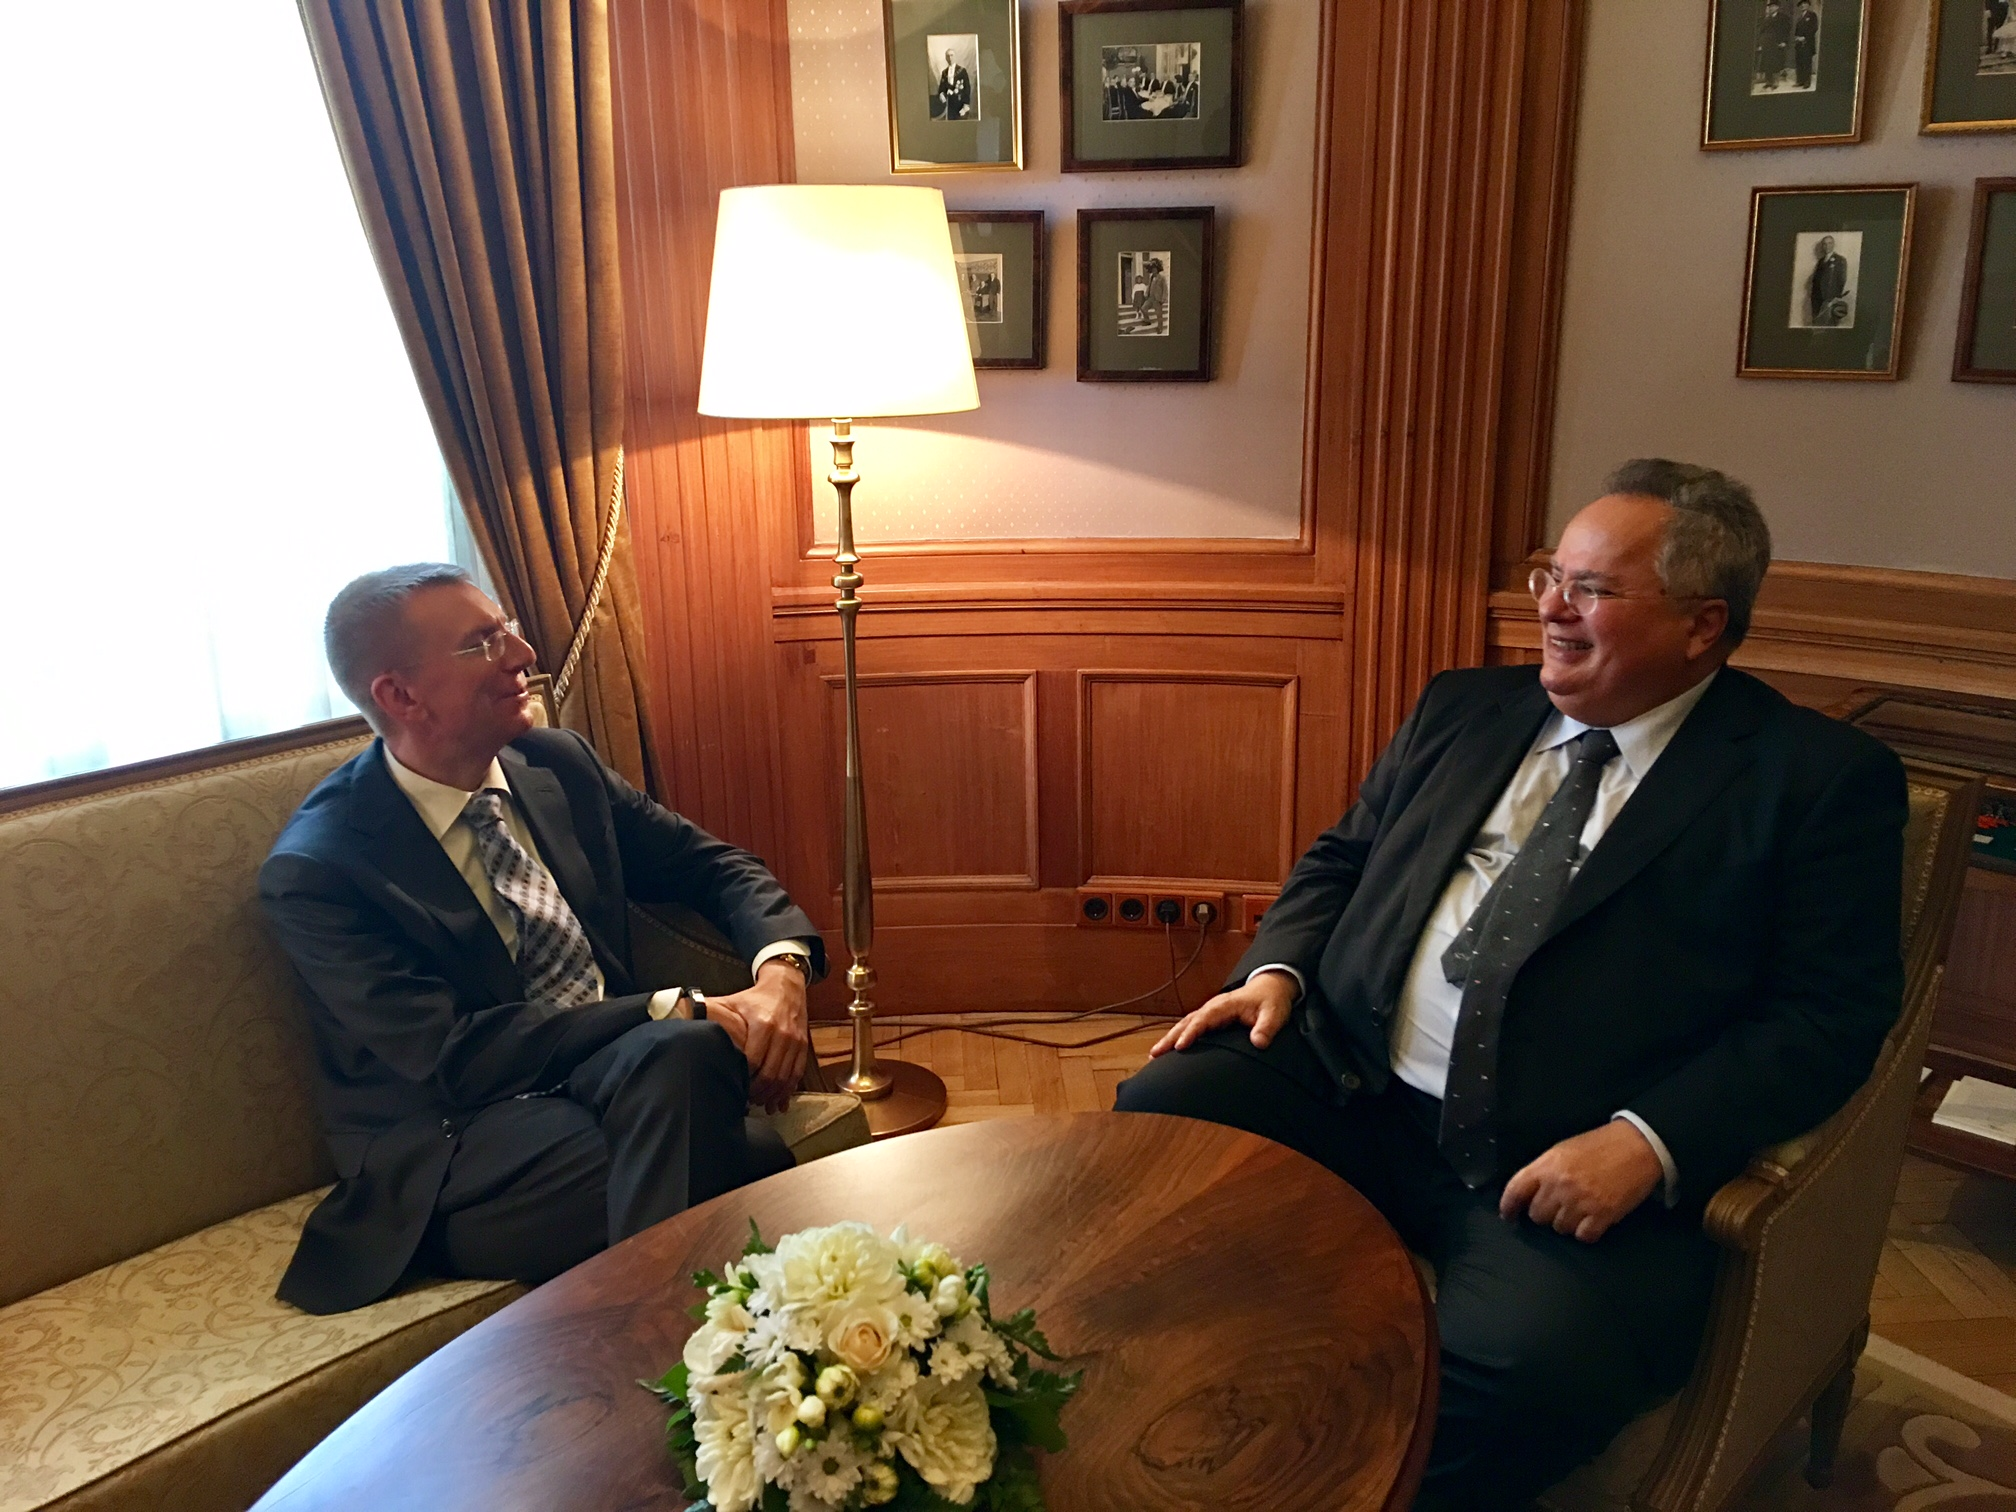 Greek Foreign Minister's visit to Riga highlights mutual desire for greater cooperation between Greece and Latvia